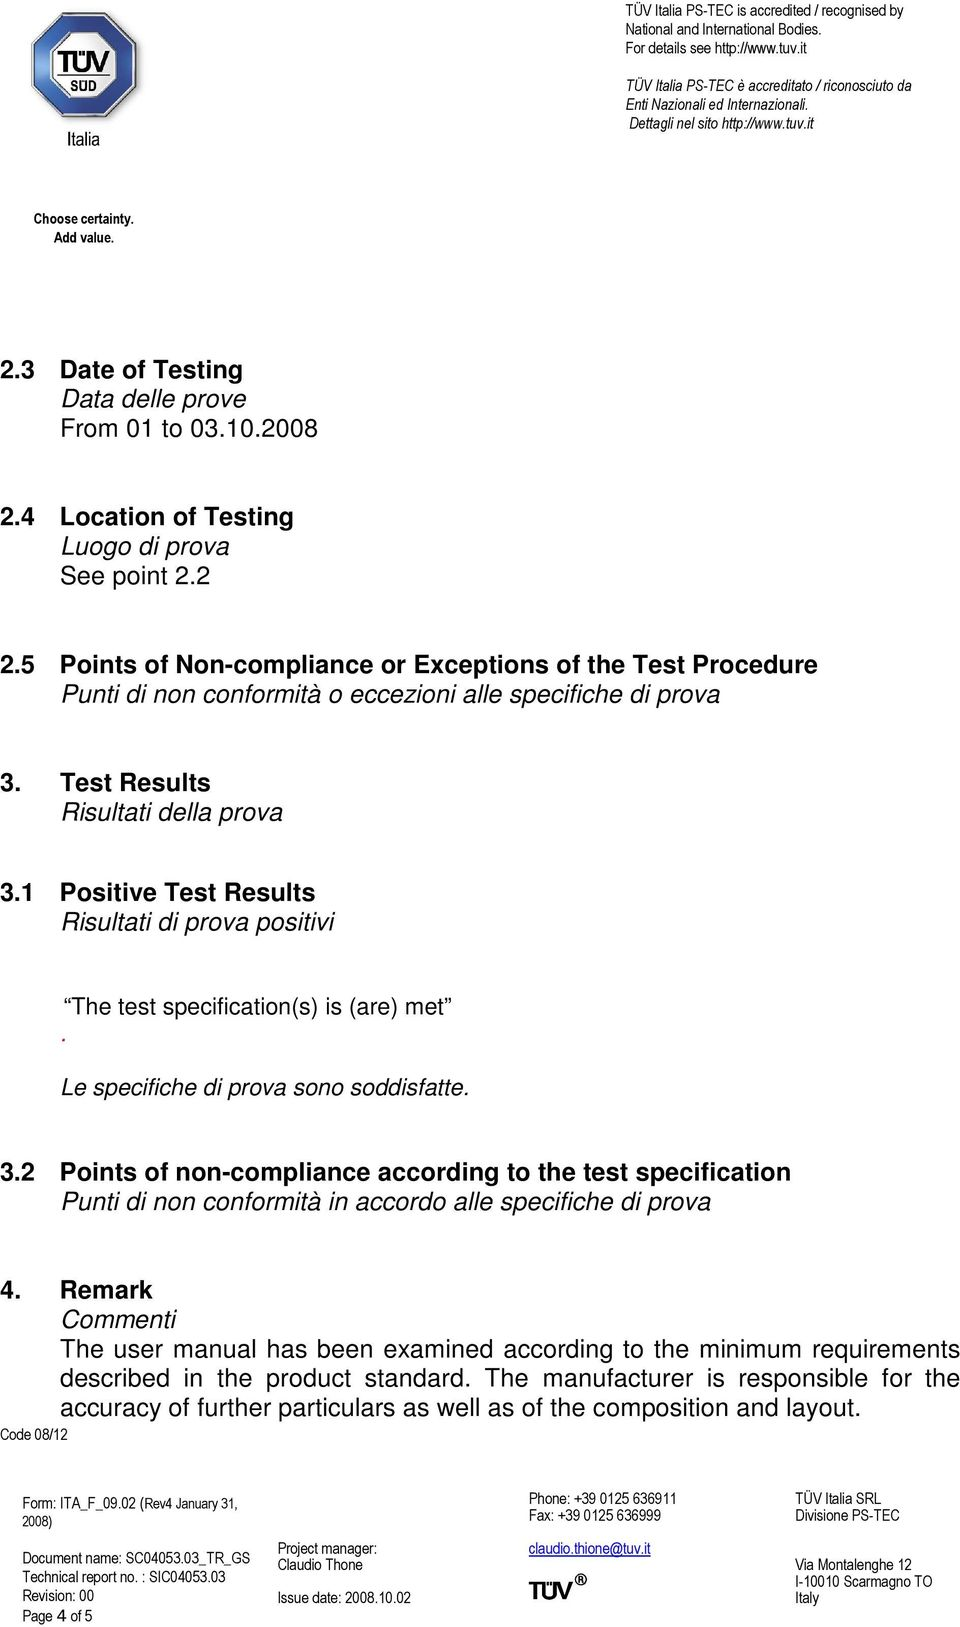 1 Positive Test Results Risultati di prova positivi The test specification(s) is (are) met. Le specifiche di prova sono soddisfatte. 3.